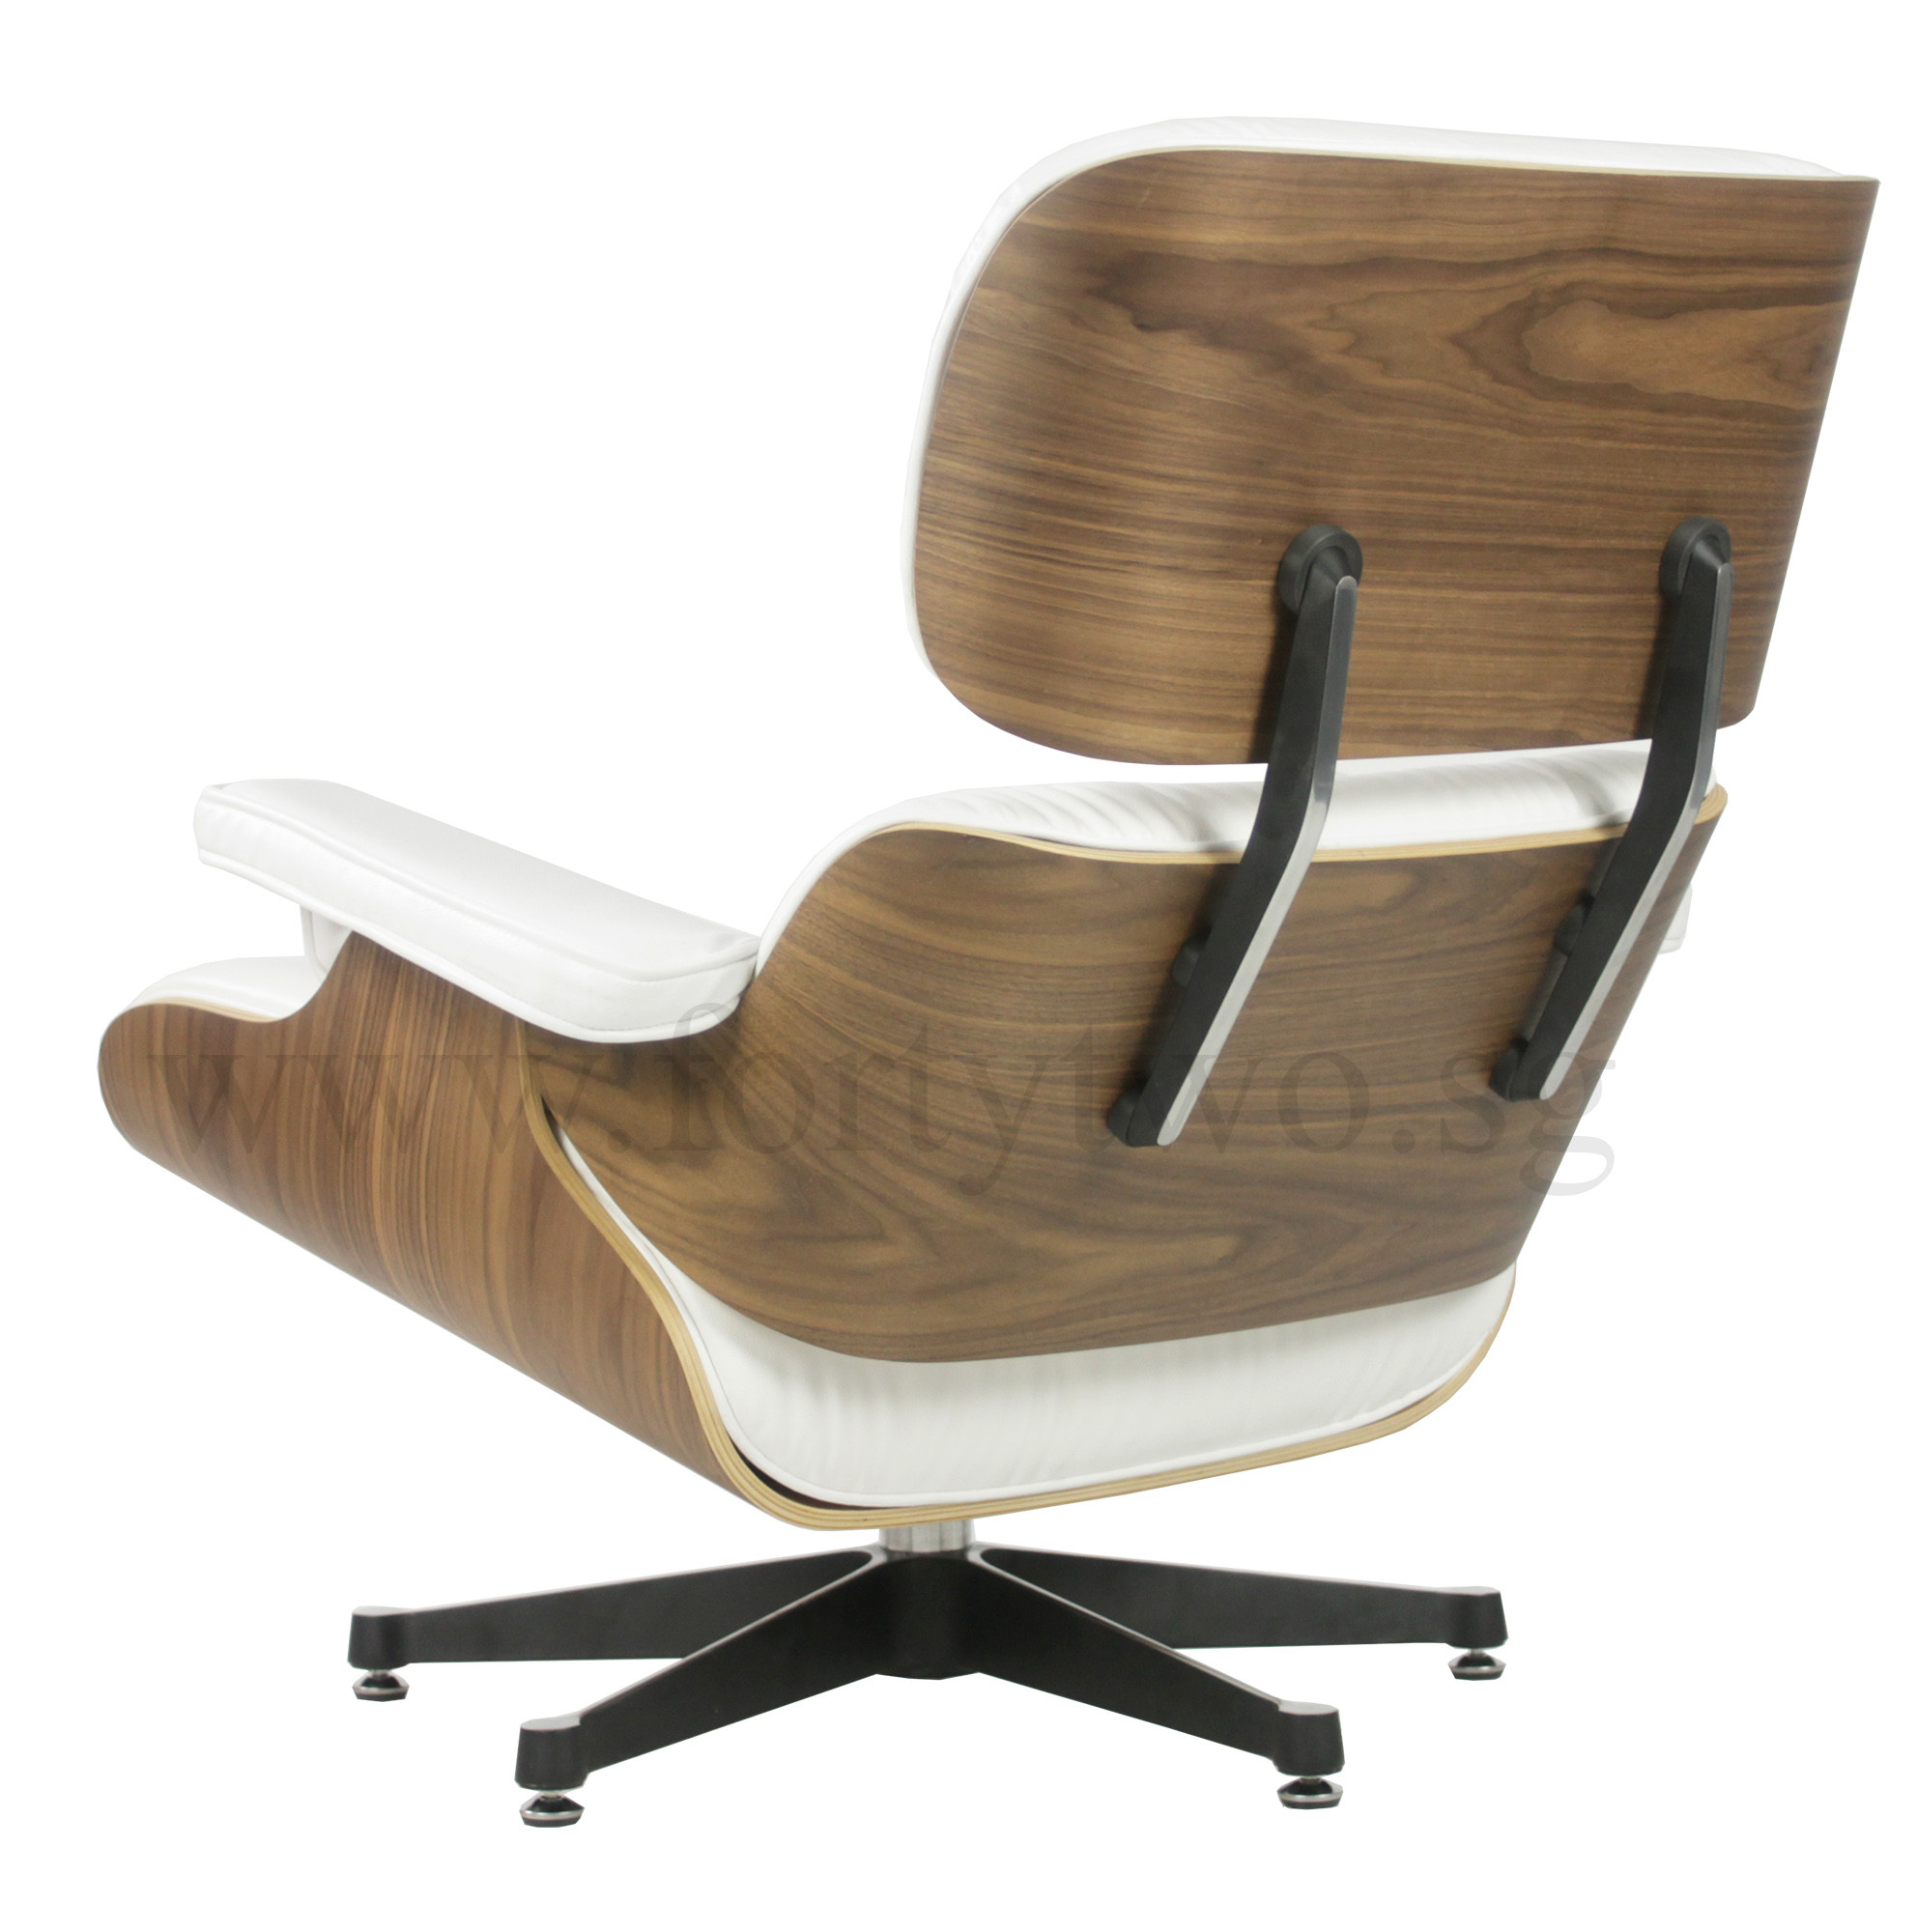 Designer replica eames lounge chair white furniture for Eames chair replica deutschland